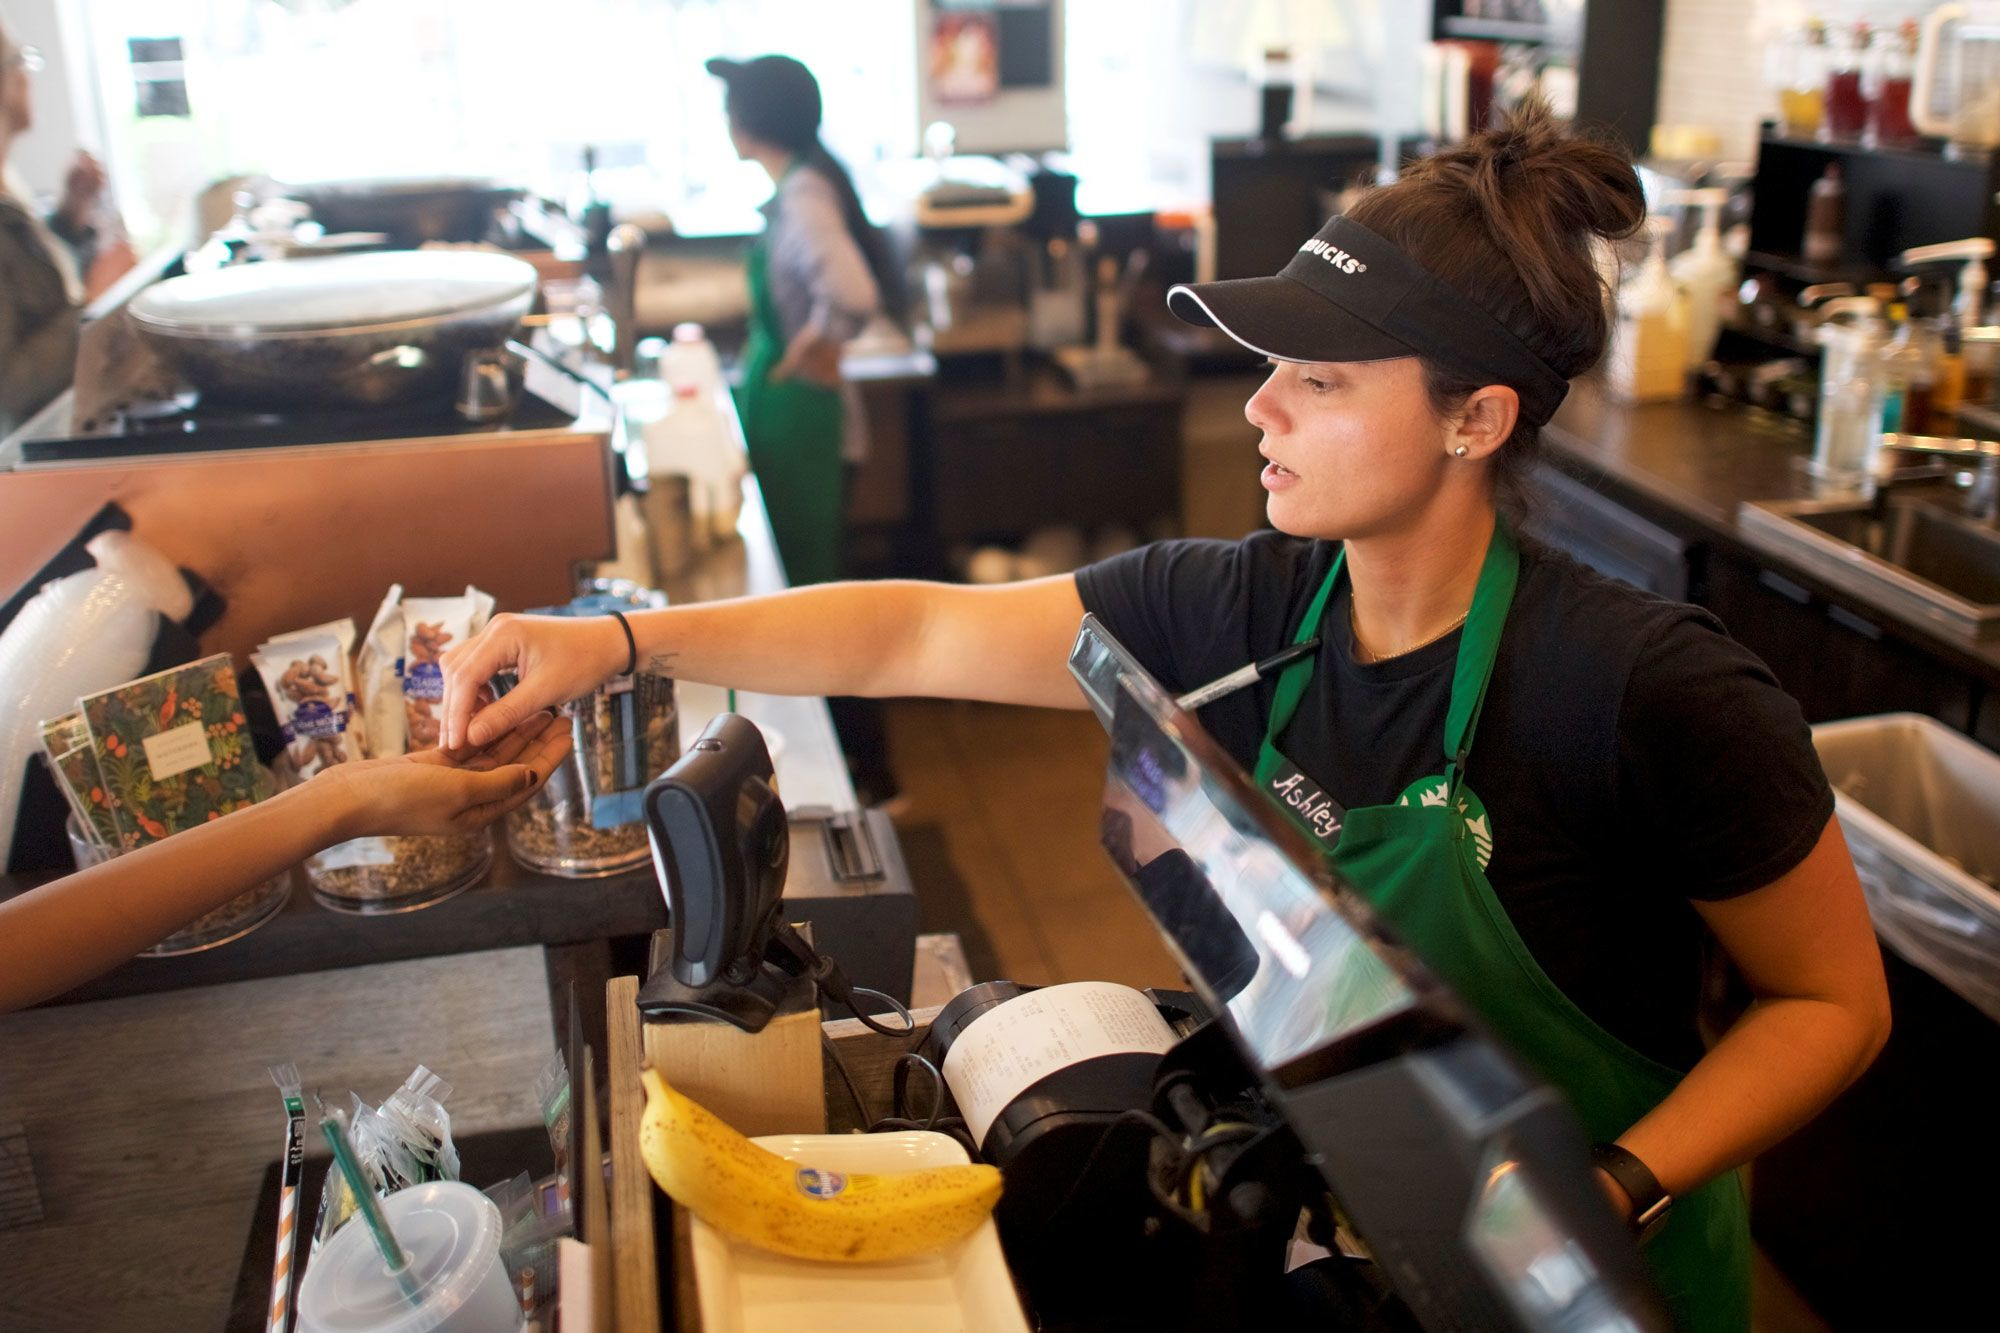 Starbucks will stop selling newspapers in its cafes